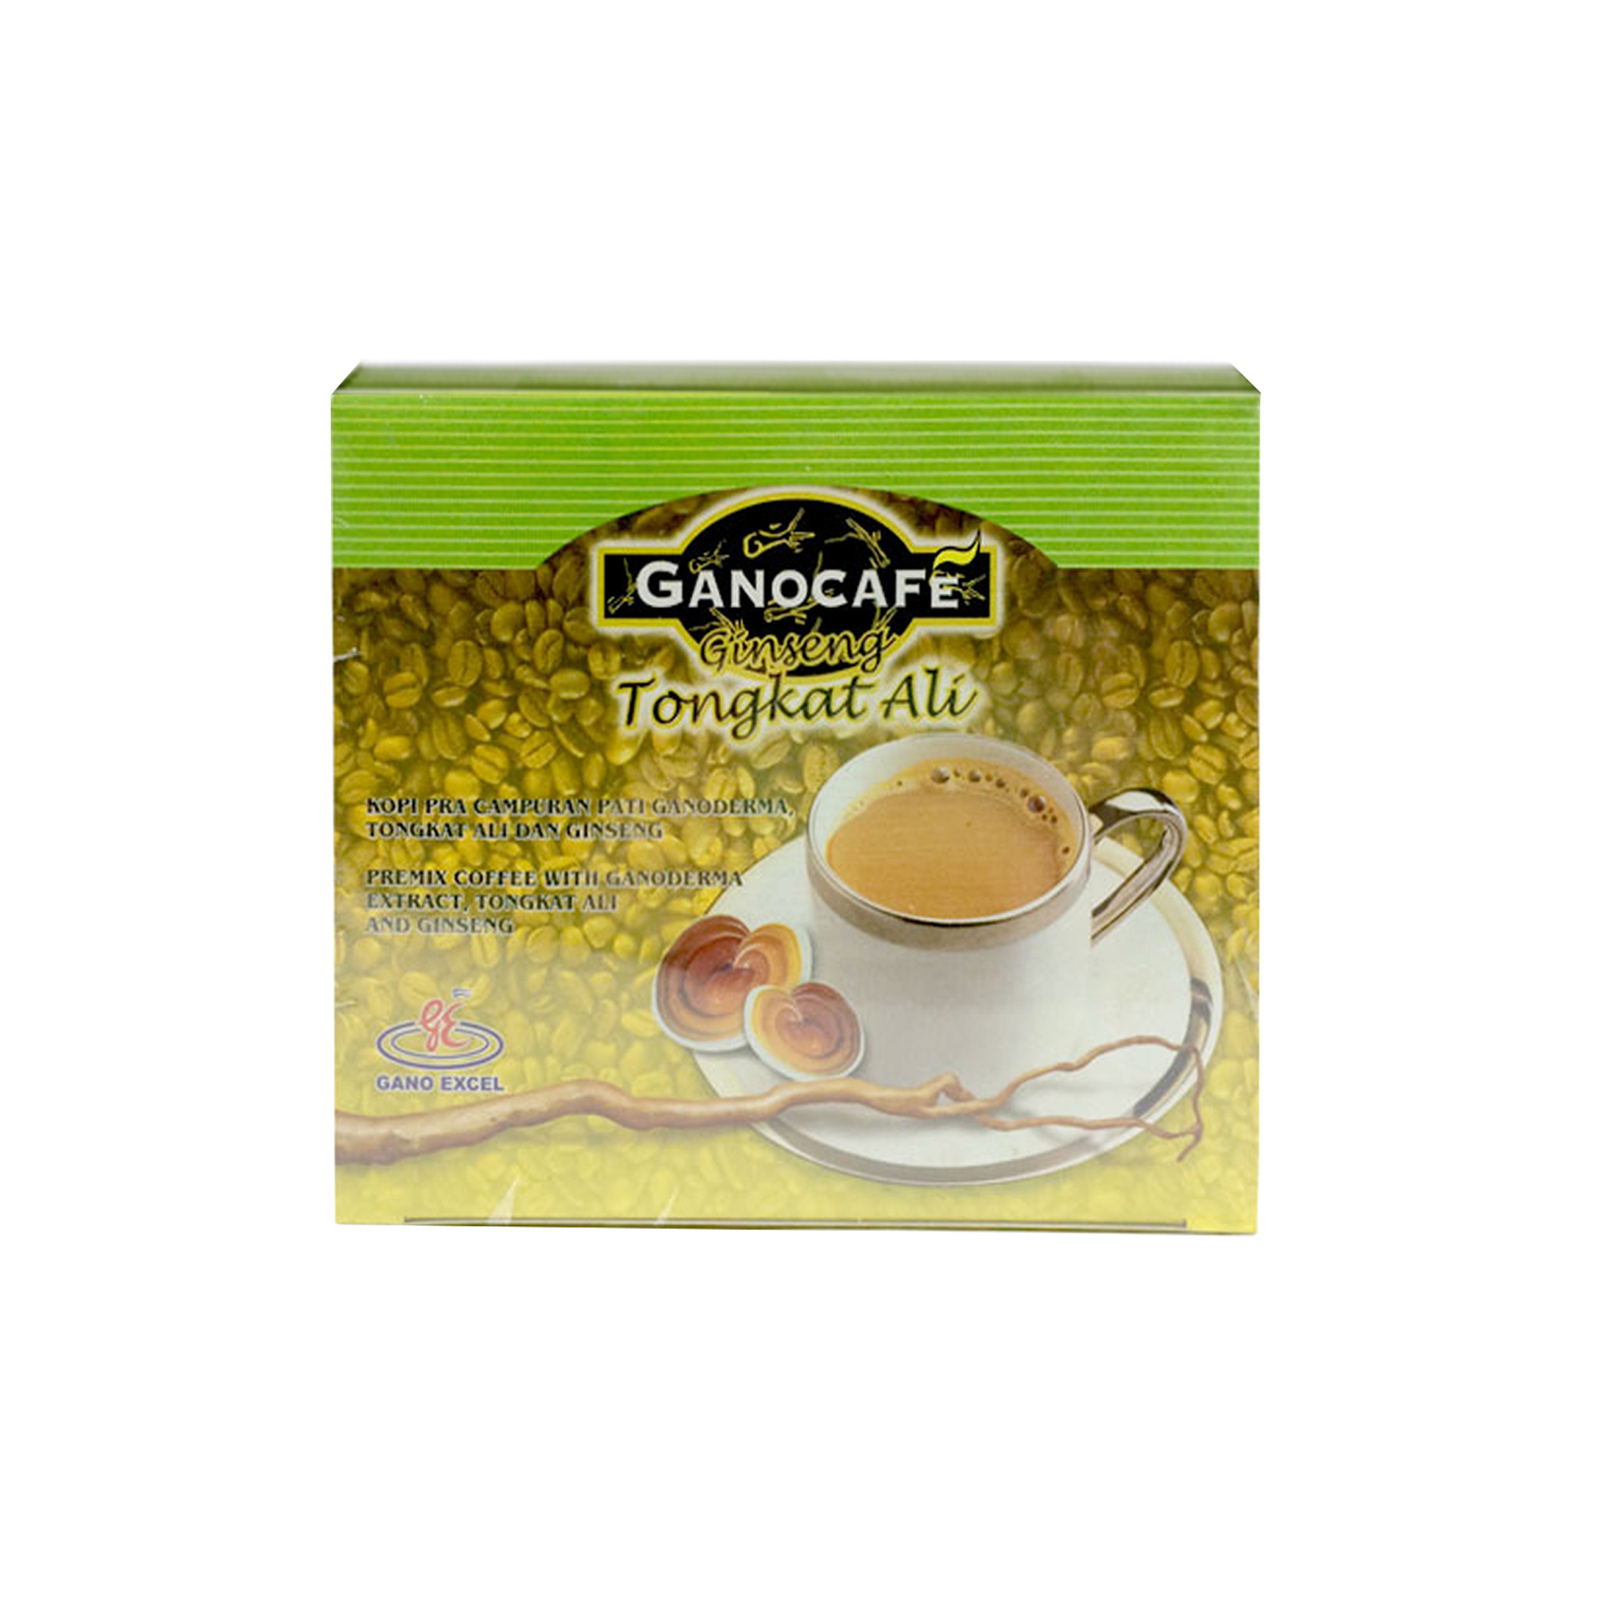 Tongkat ali coffee gano cafe gano excel and 48 similar items tongkat ali coffee gano cafe gano excel exp 0419 vitality herbal boost reheart Choice Image